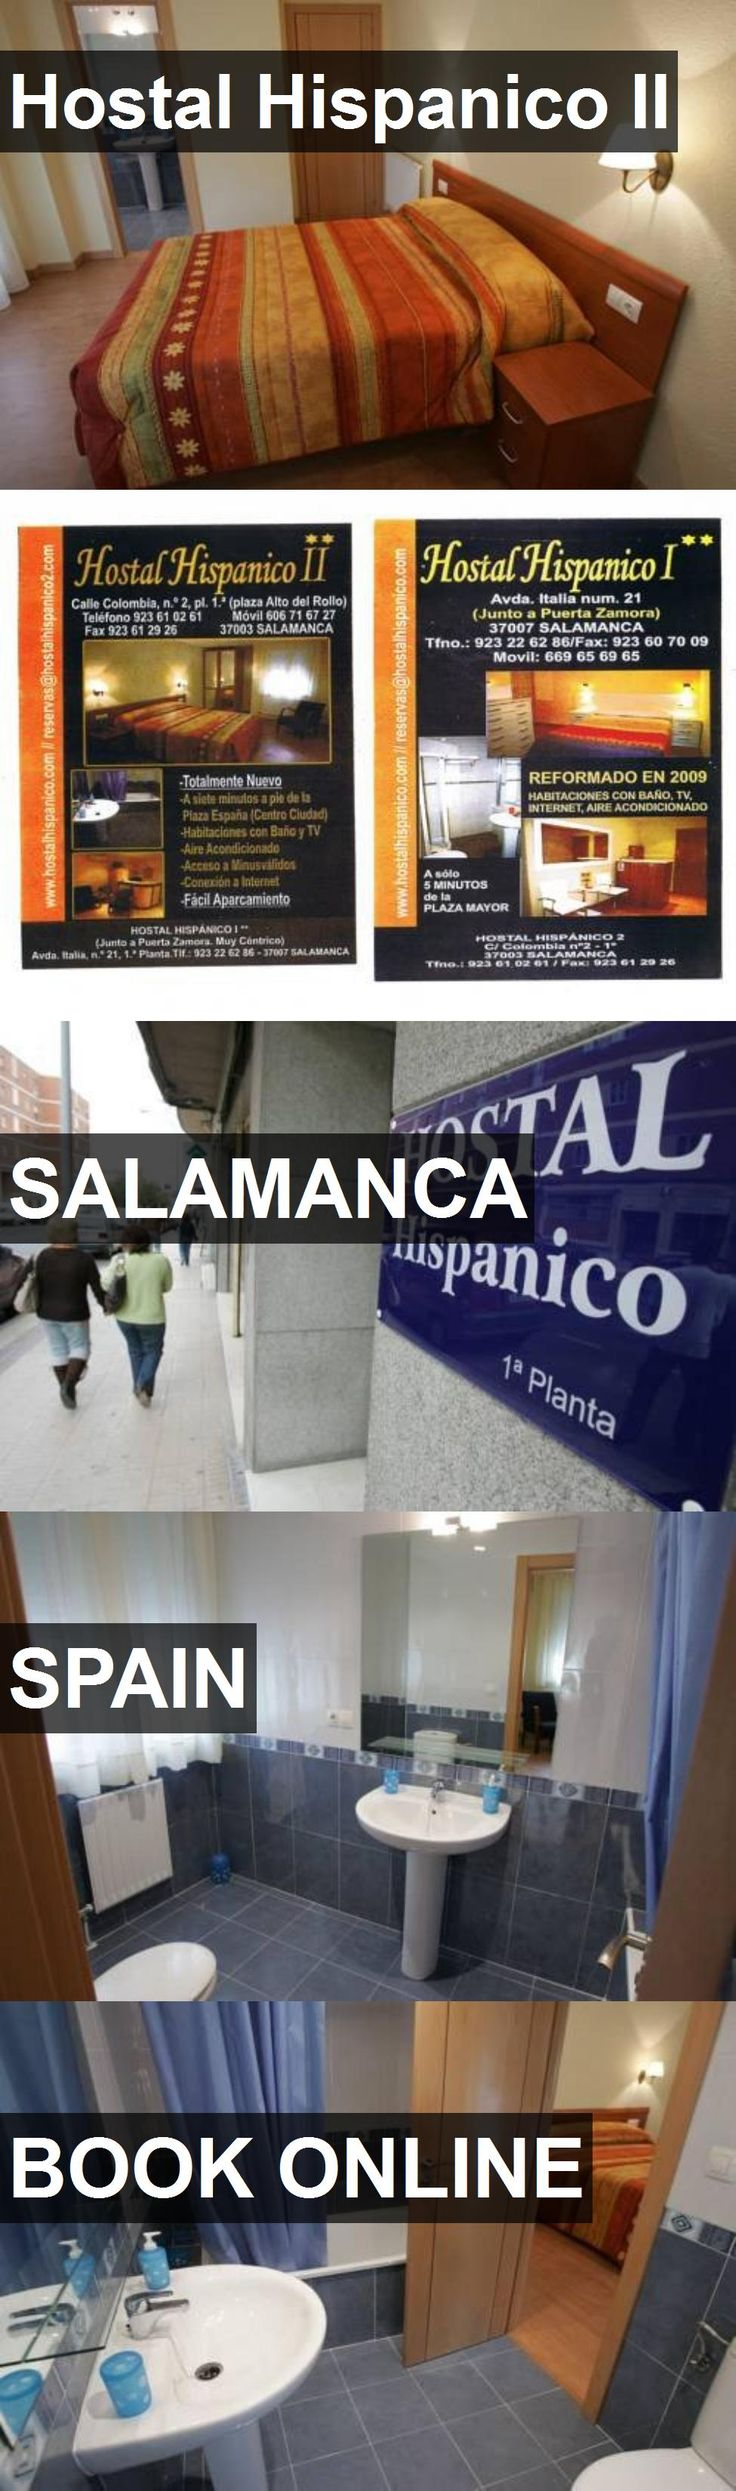 Hotel Hostal Hispanico II in Salamanca, Spain. For more information, photos, reviews and best prices please follow the link. #Spain #Salamanca #travel #vacation #hotel